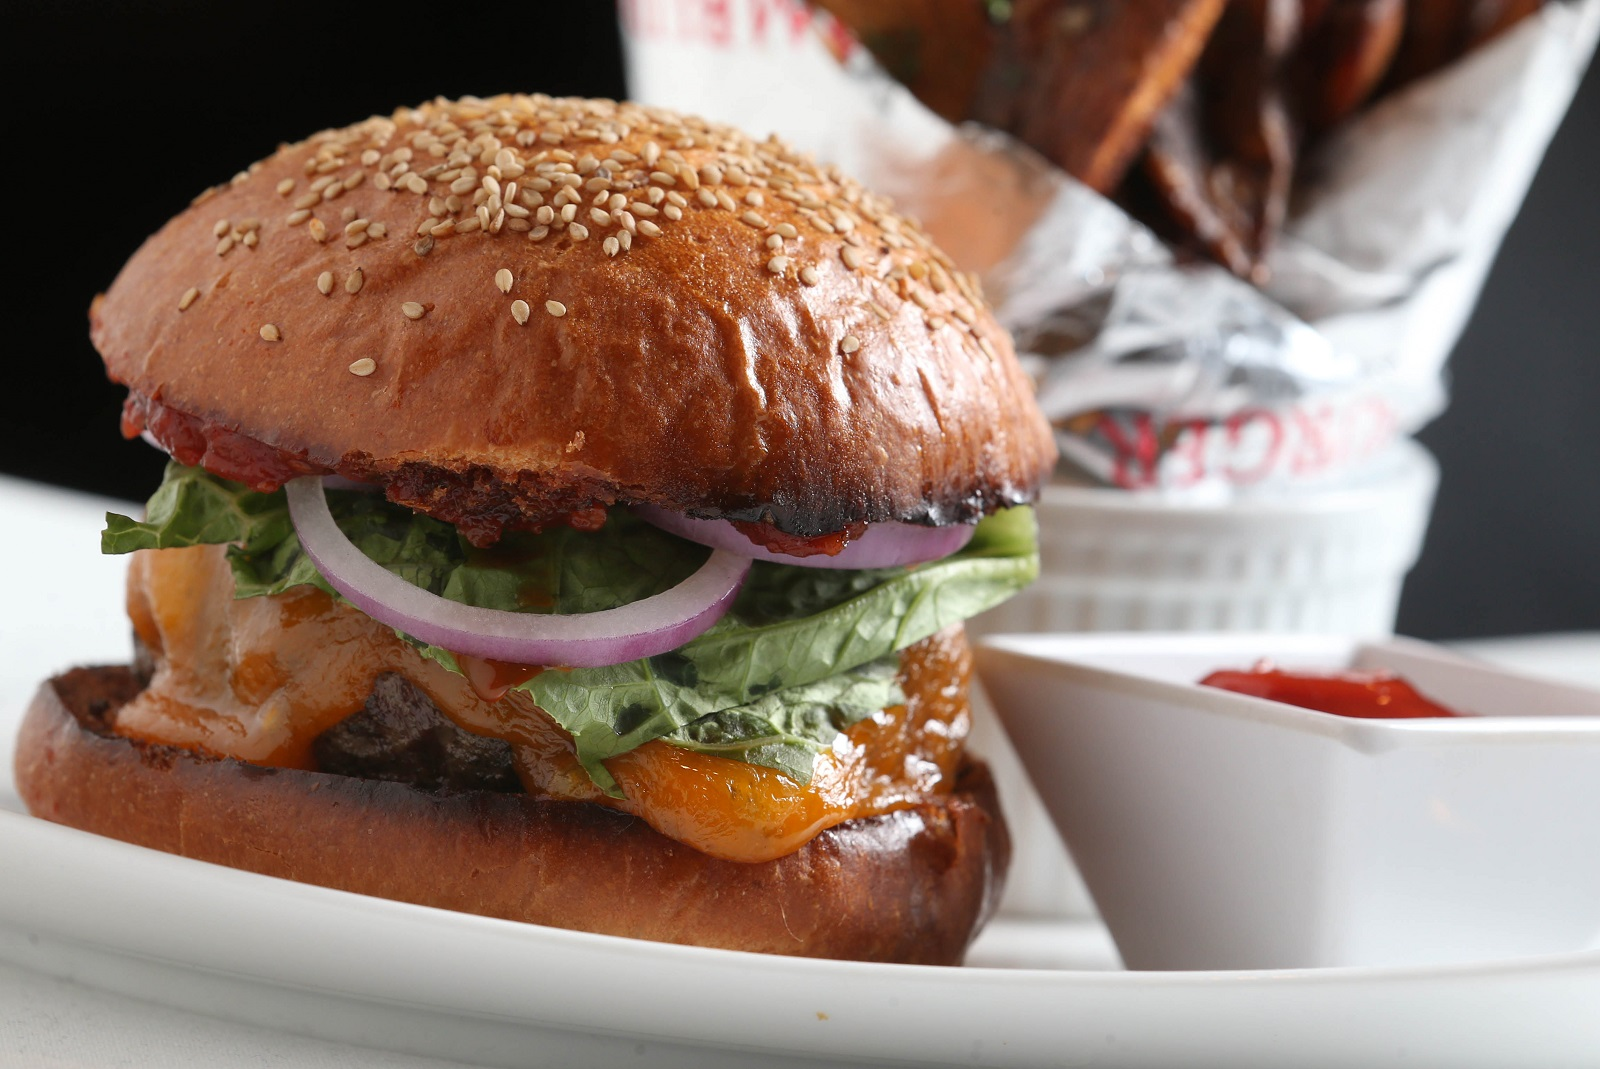 Oliver's Restaurant's burger is 10-ounce certified angus beef prime, smoked cheddar, lettuce, red onion and Spanish tomato jam. The fries come with a smoked tomato ketchup. (Sharon Cantillon/Buffalo News)